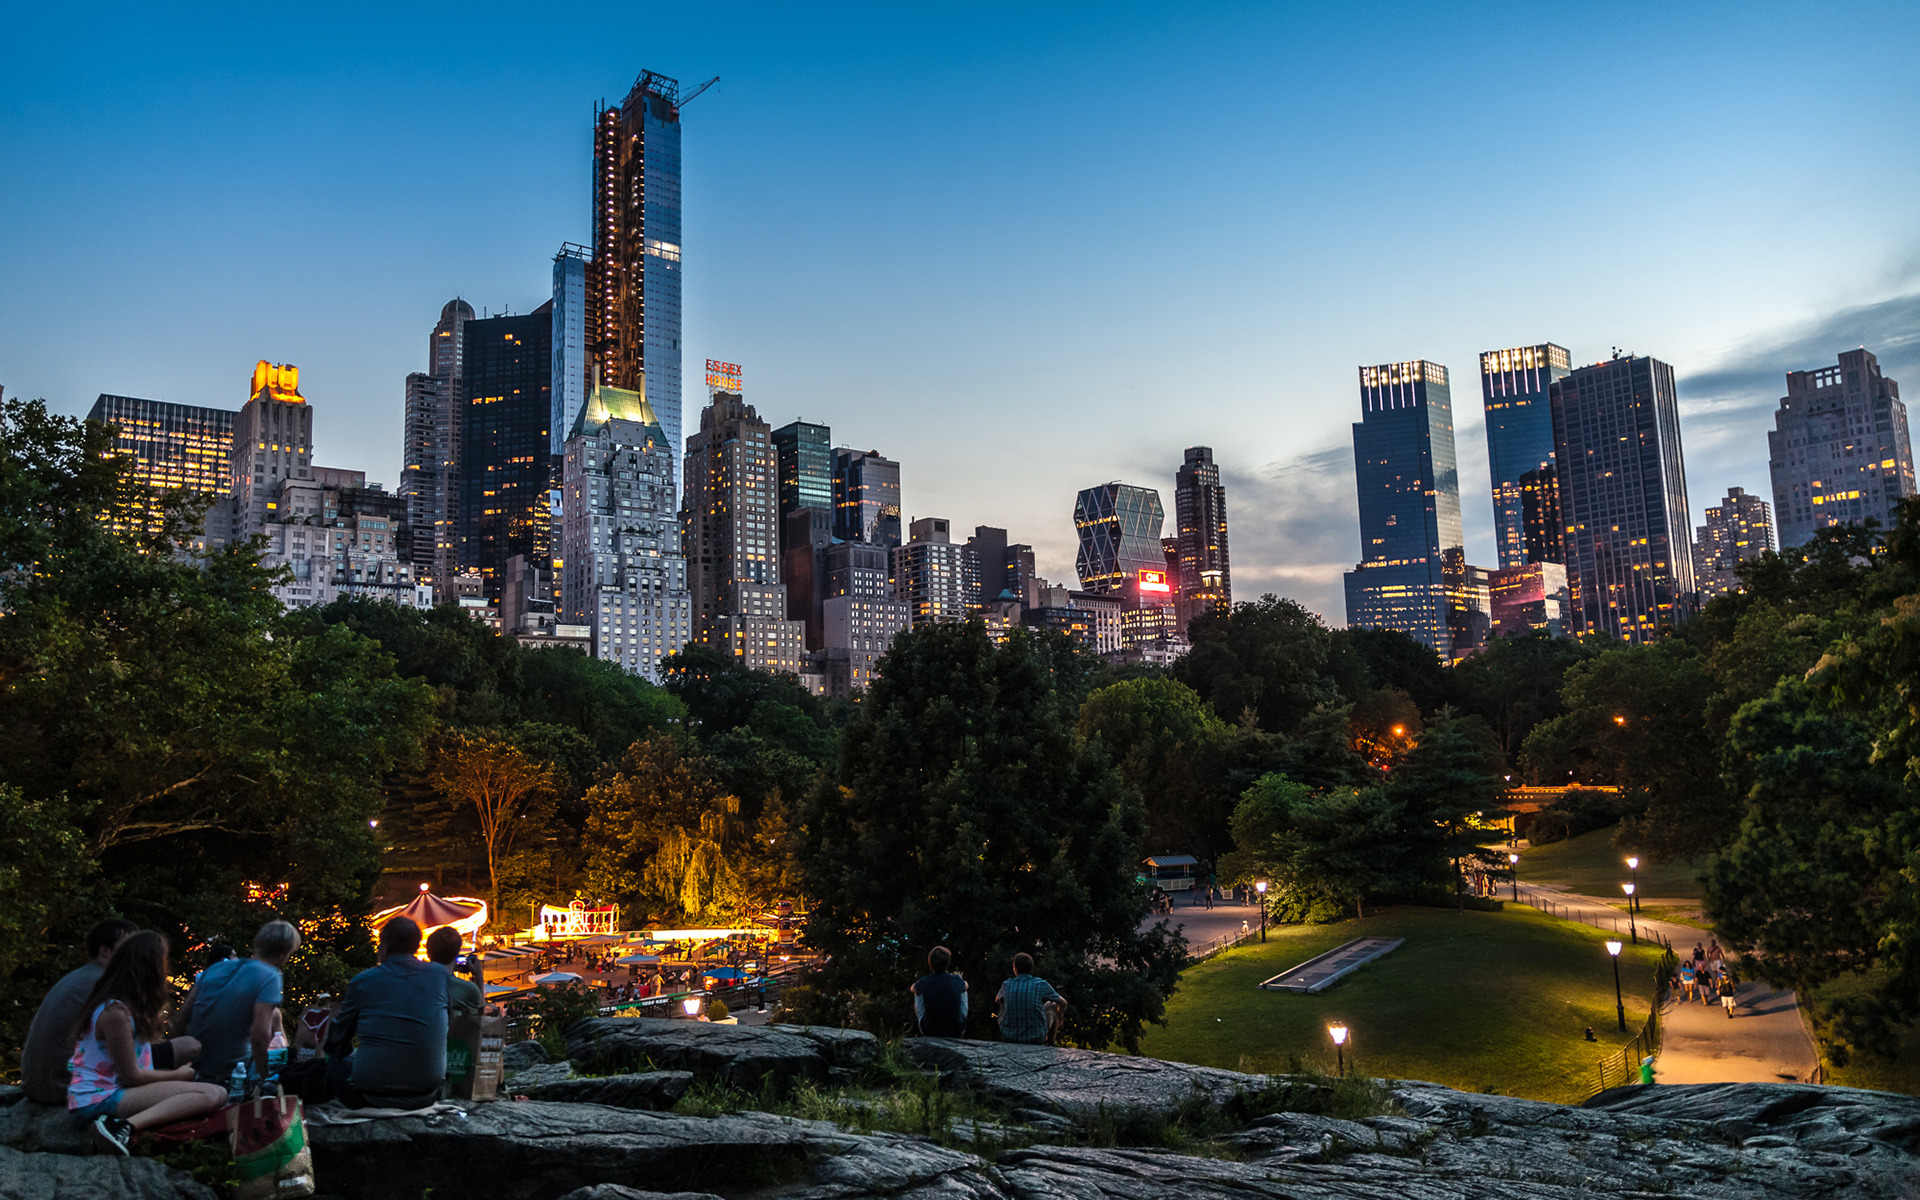 New york city lights in central park